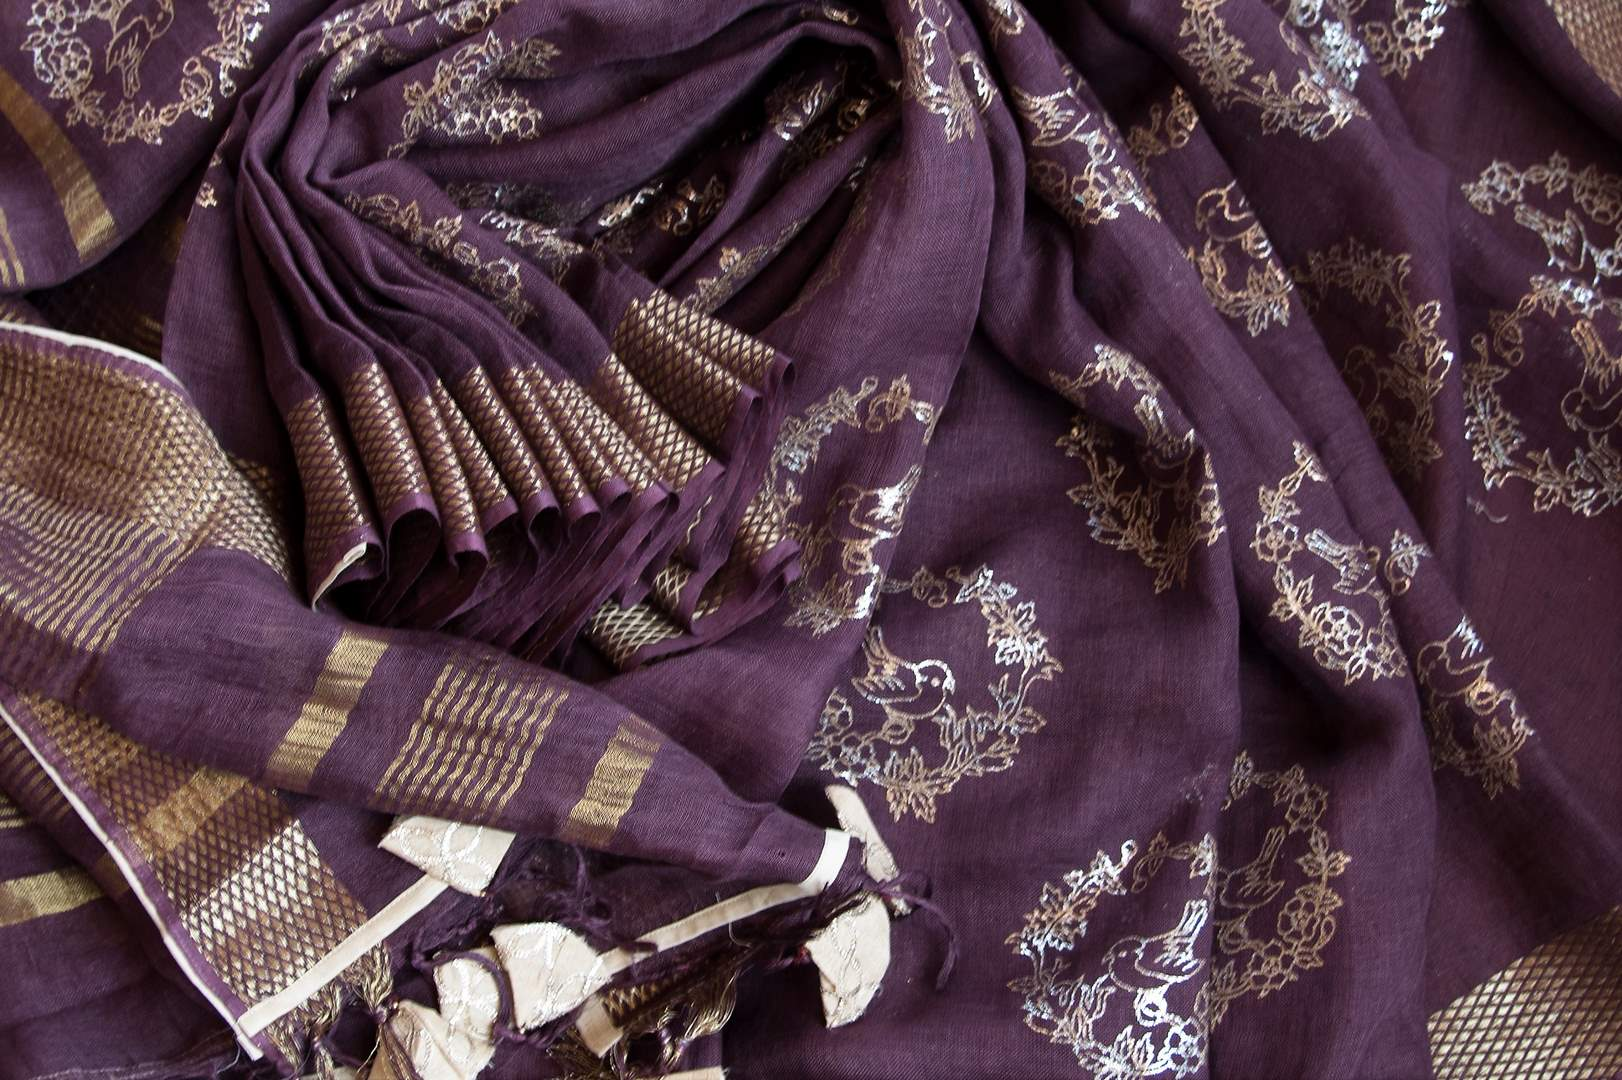 Buy purple linen saree online in USA with zari border and bird nest motifs. Make your ethnic style even more stylish with an exclusive range on Indian handloom sarees from Pure Elegance Indian fashion store in USA. -details